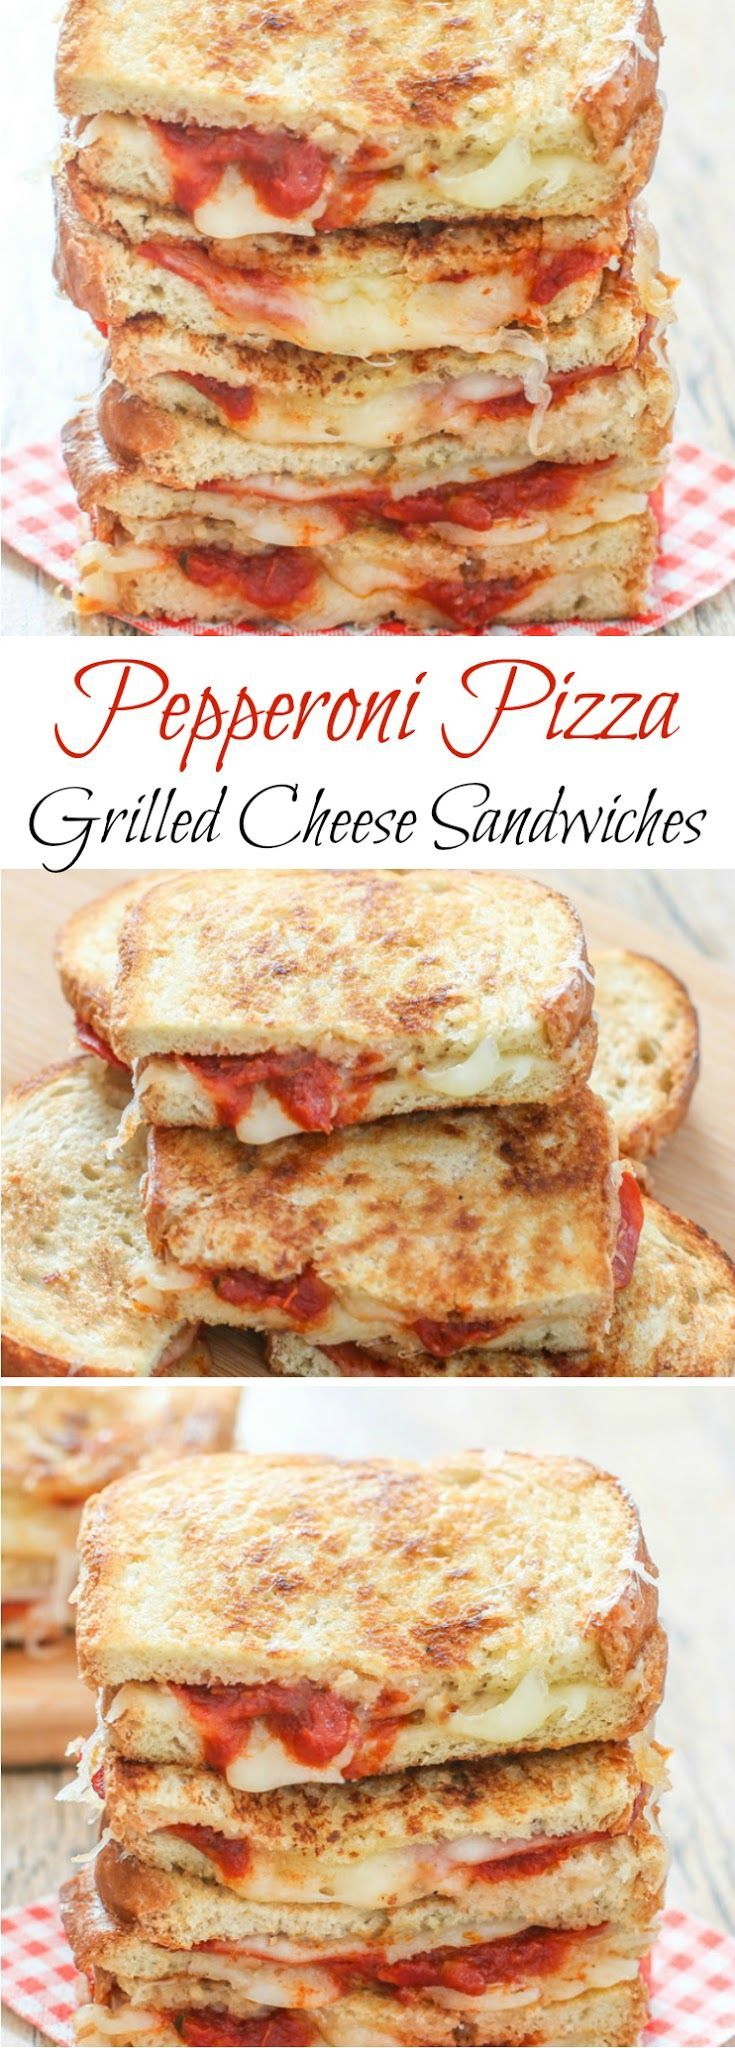 Pepperoni Pizza Grilled Cheese Sandwiches via @kirbiecravings